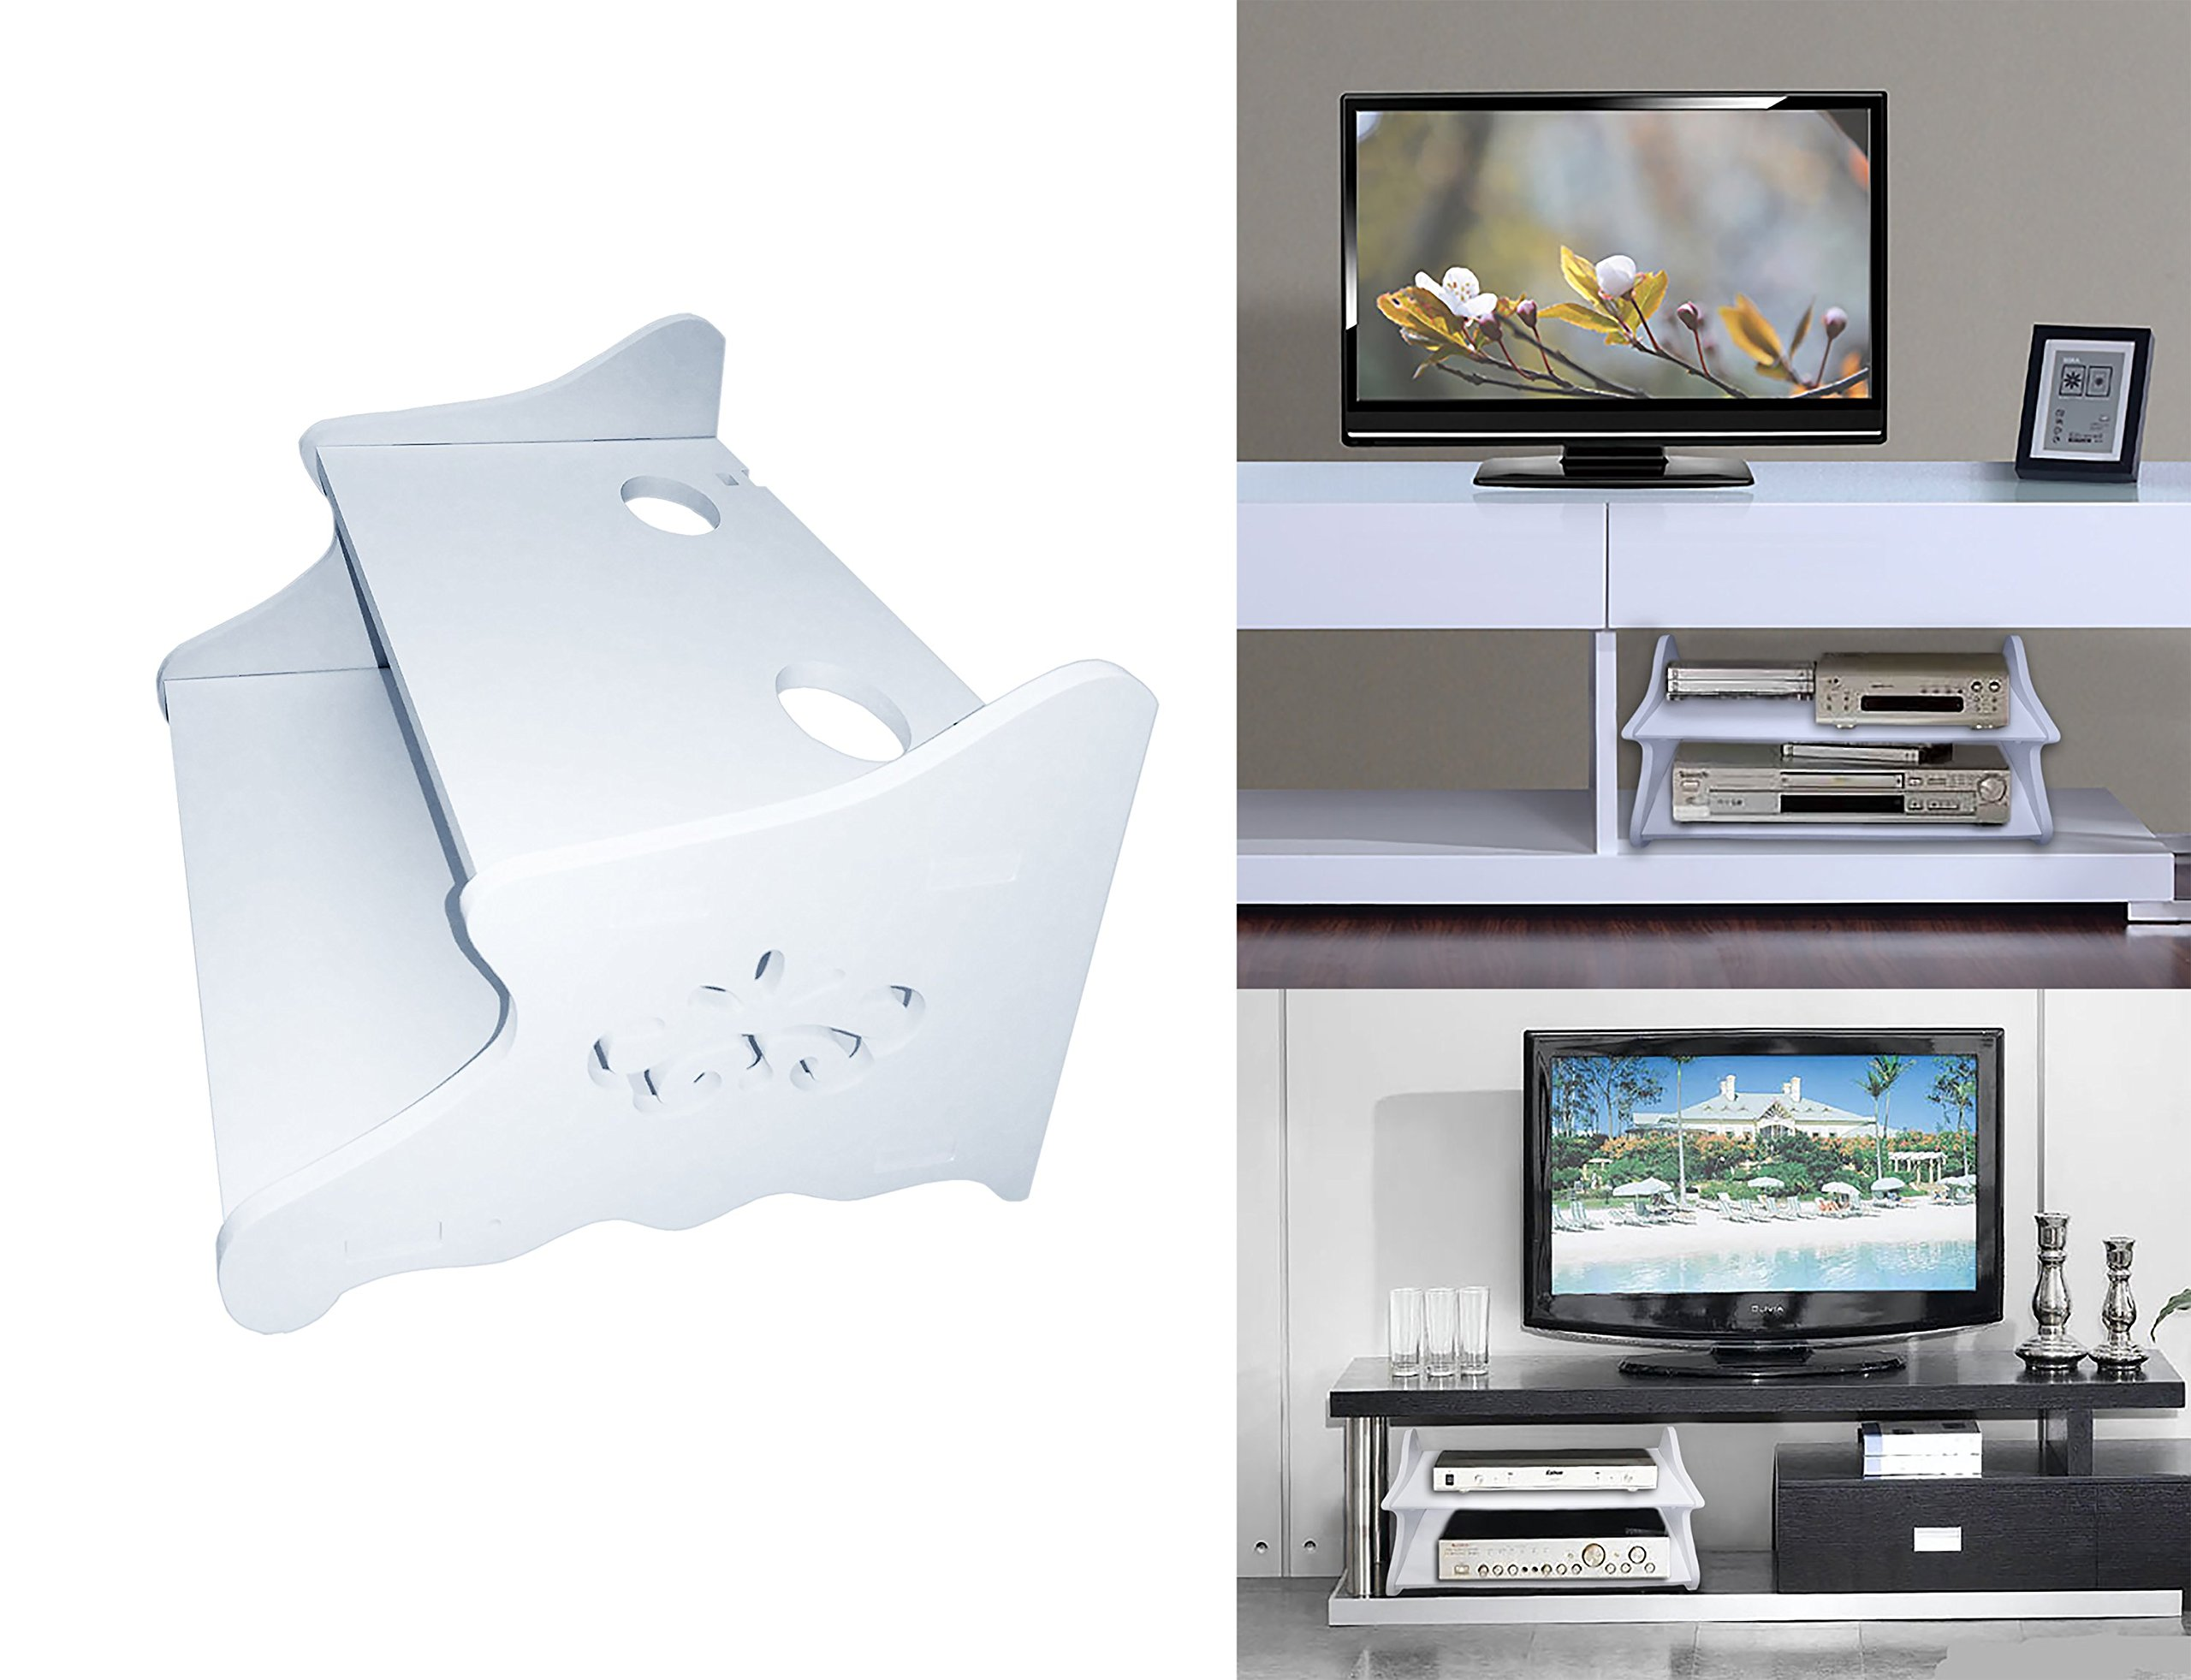 Floating Wall shelf 2 tier with holes for wiring for DVD or Dvr machines holds it up high with additional shelf for remote or small stuff